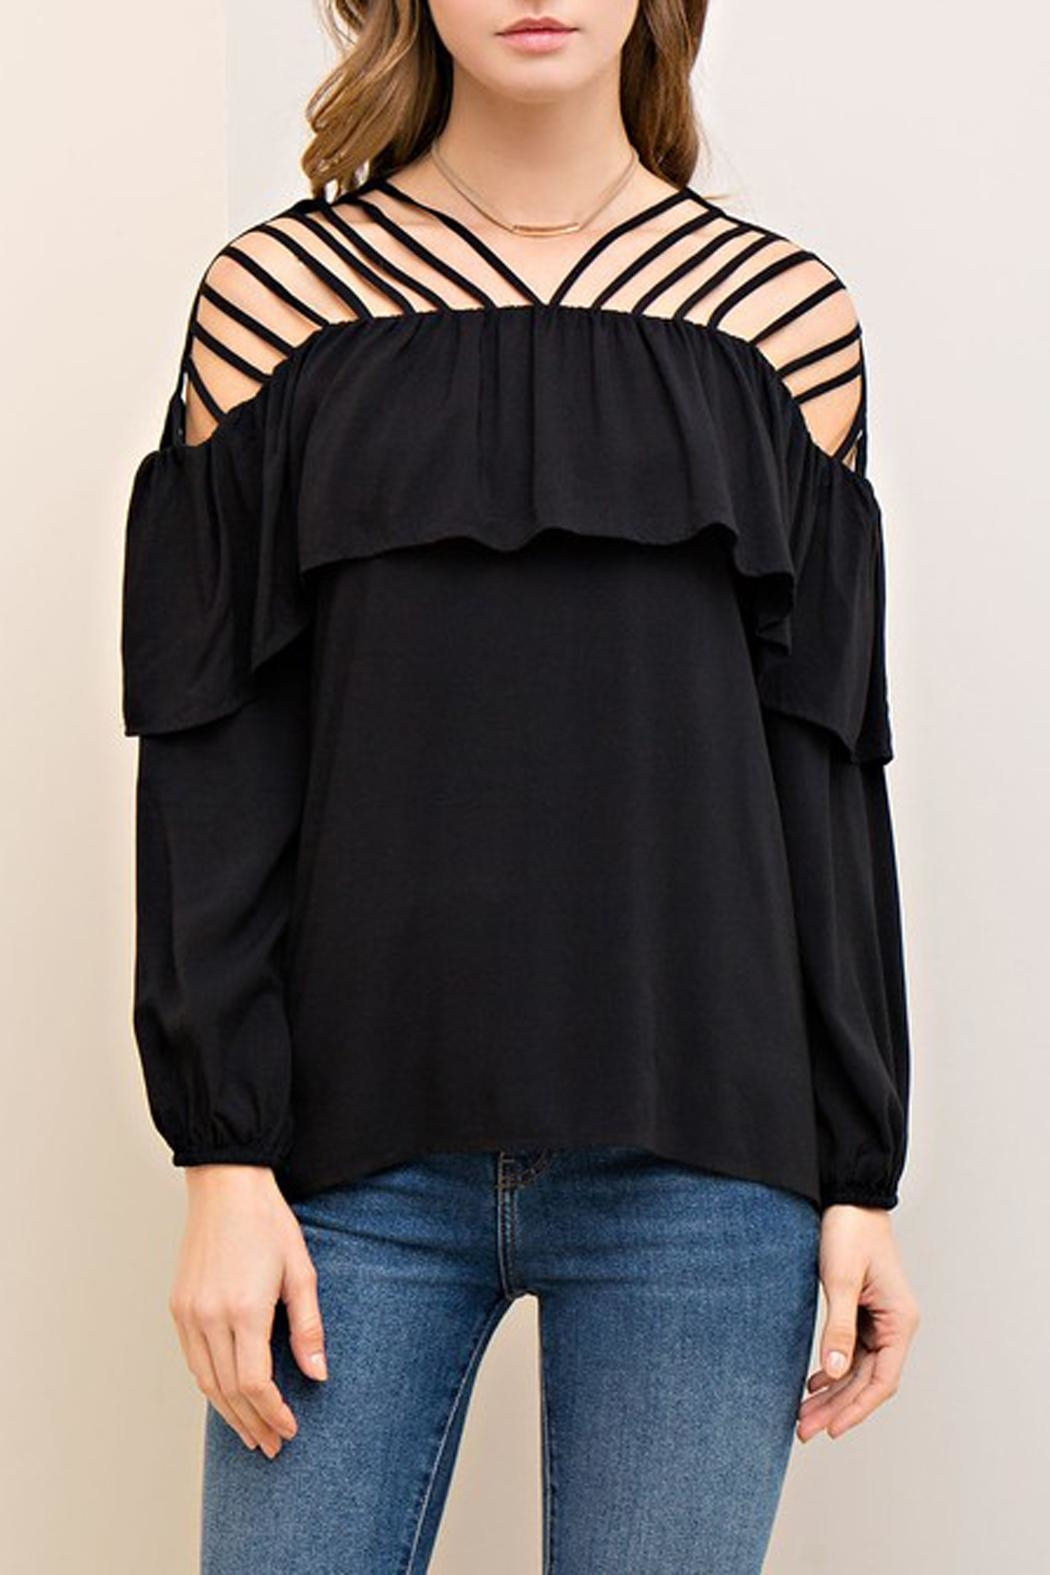 The Vintage Valet Black Ruffle Top - Main Image